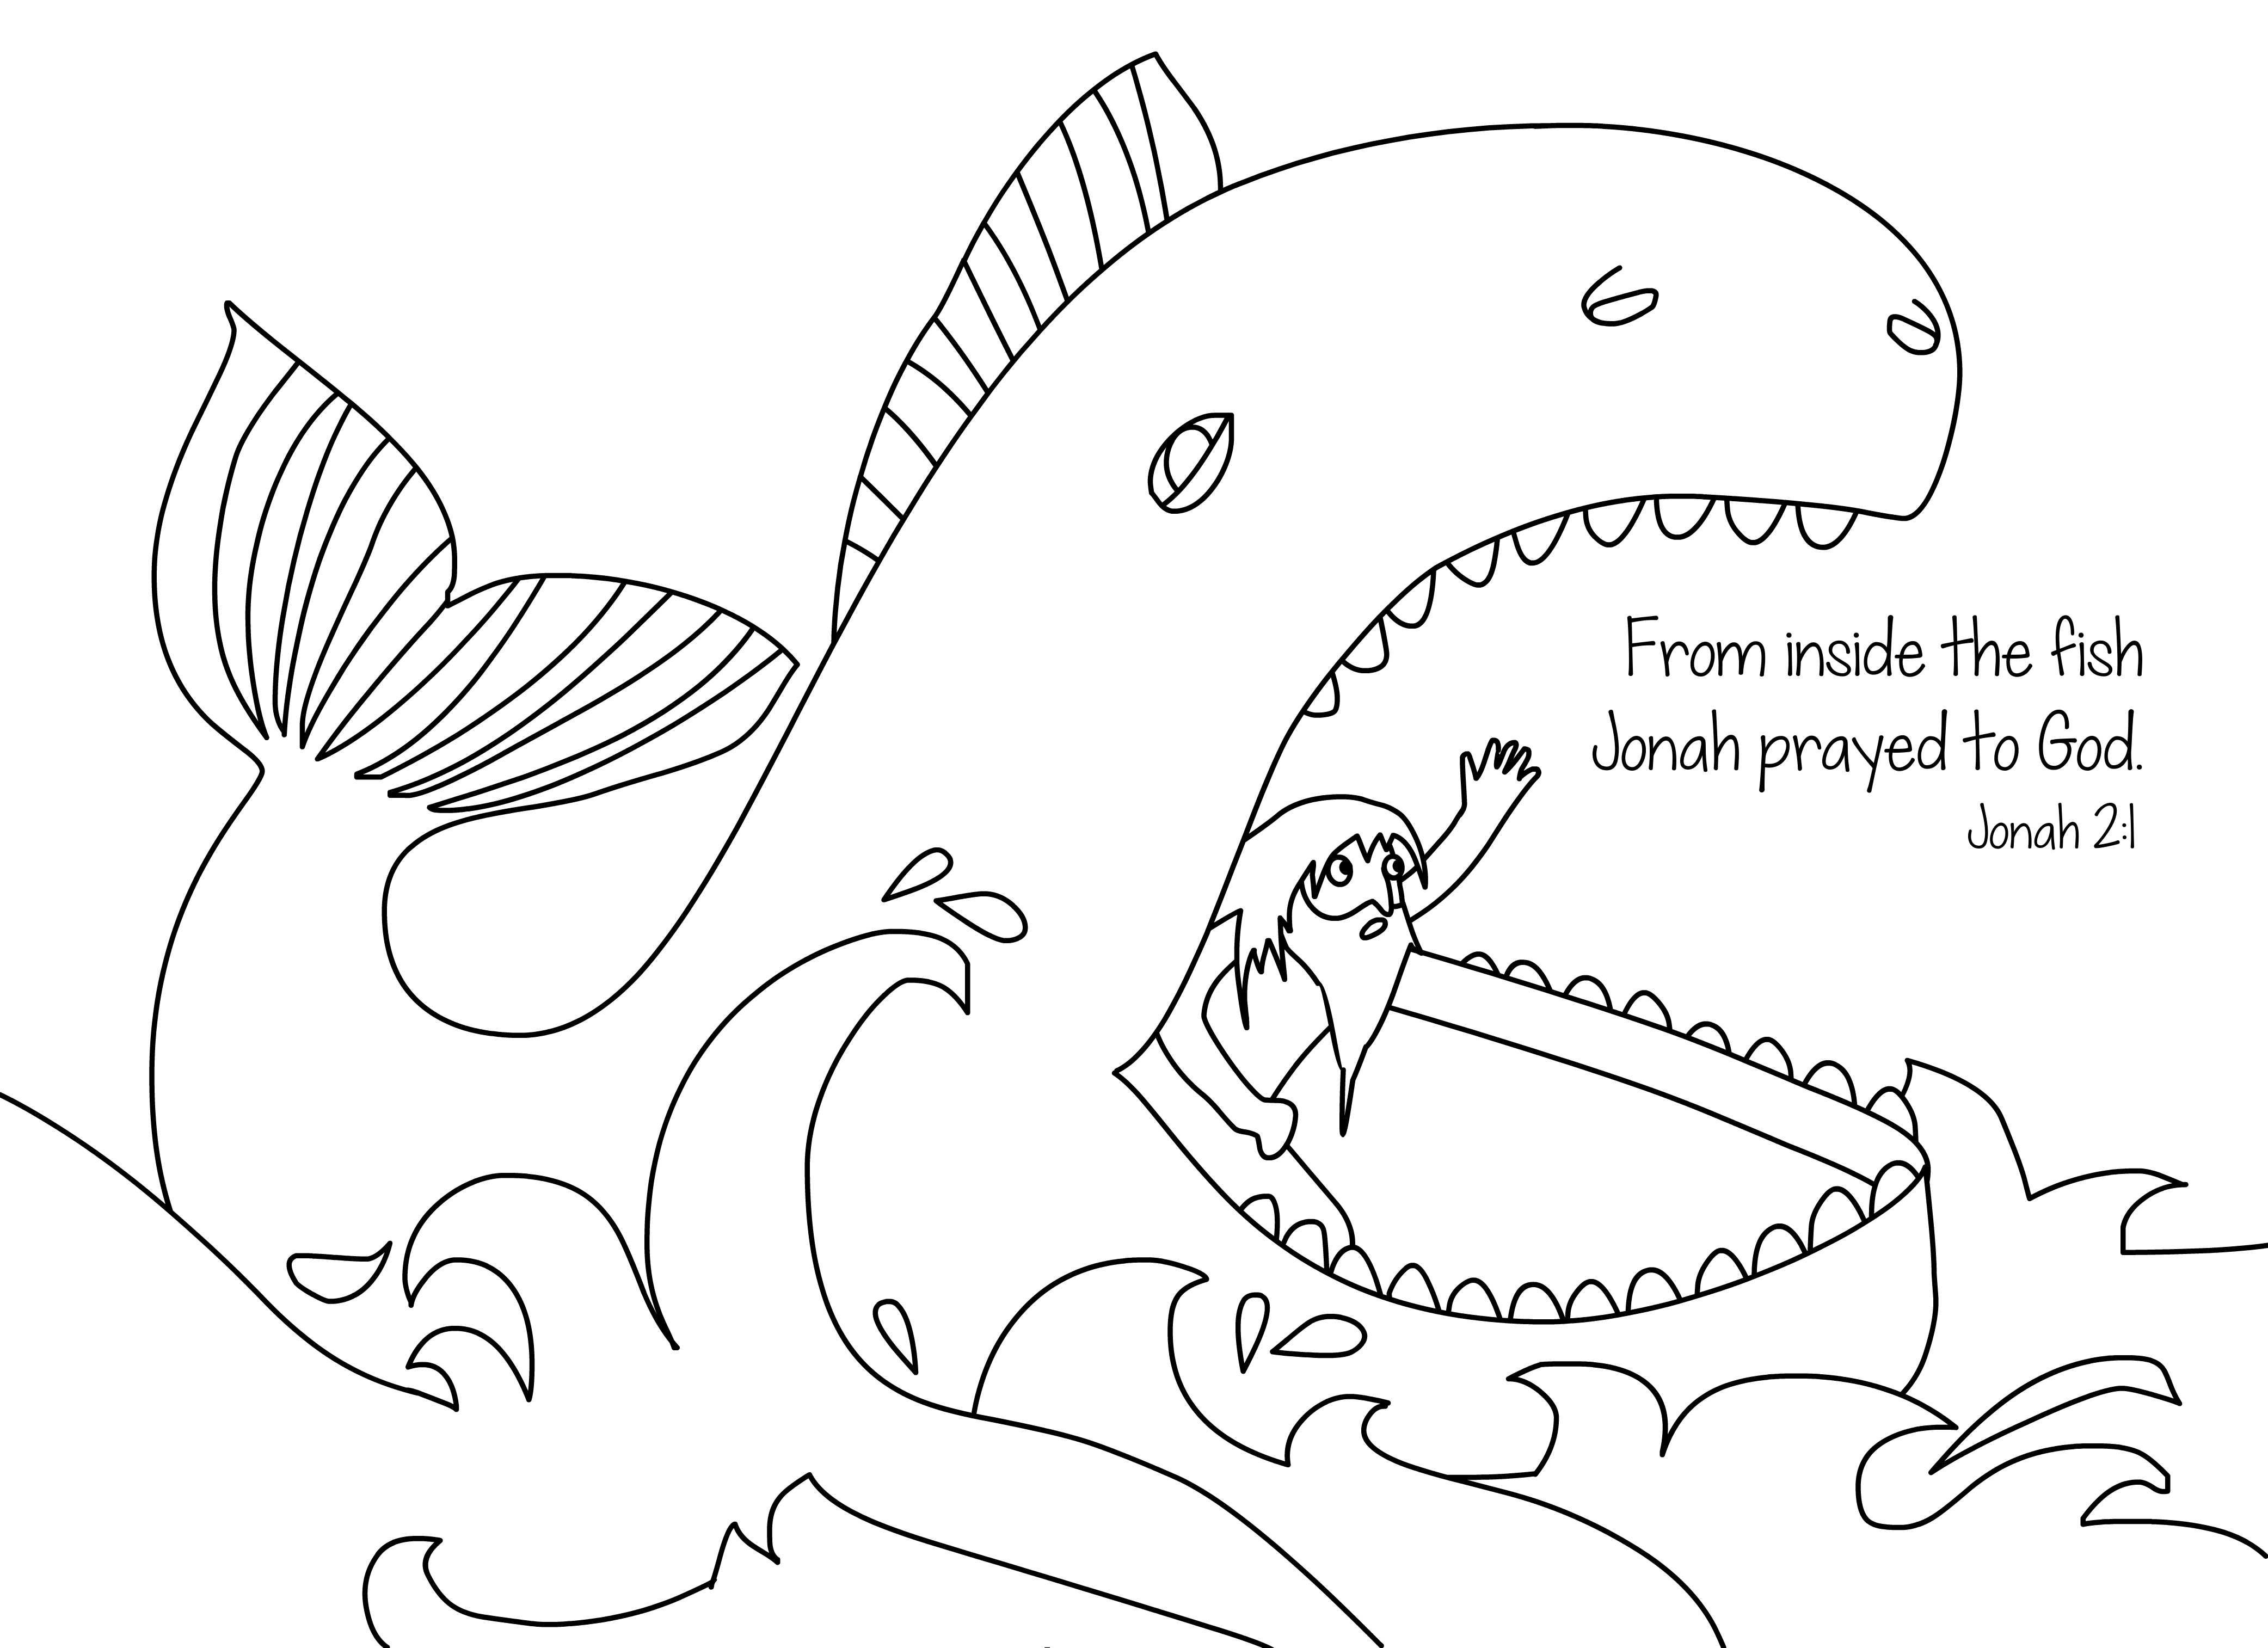 jonah and the whale coloring pages for preschoolers Download-Jonah and the whale free bible coloring page from Cullen s Abc s 16-t